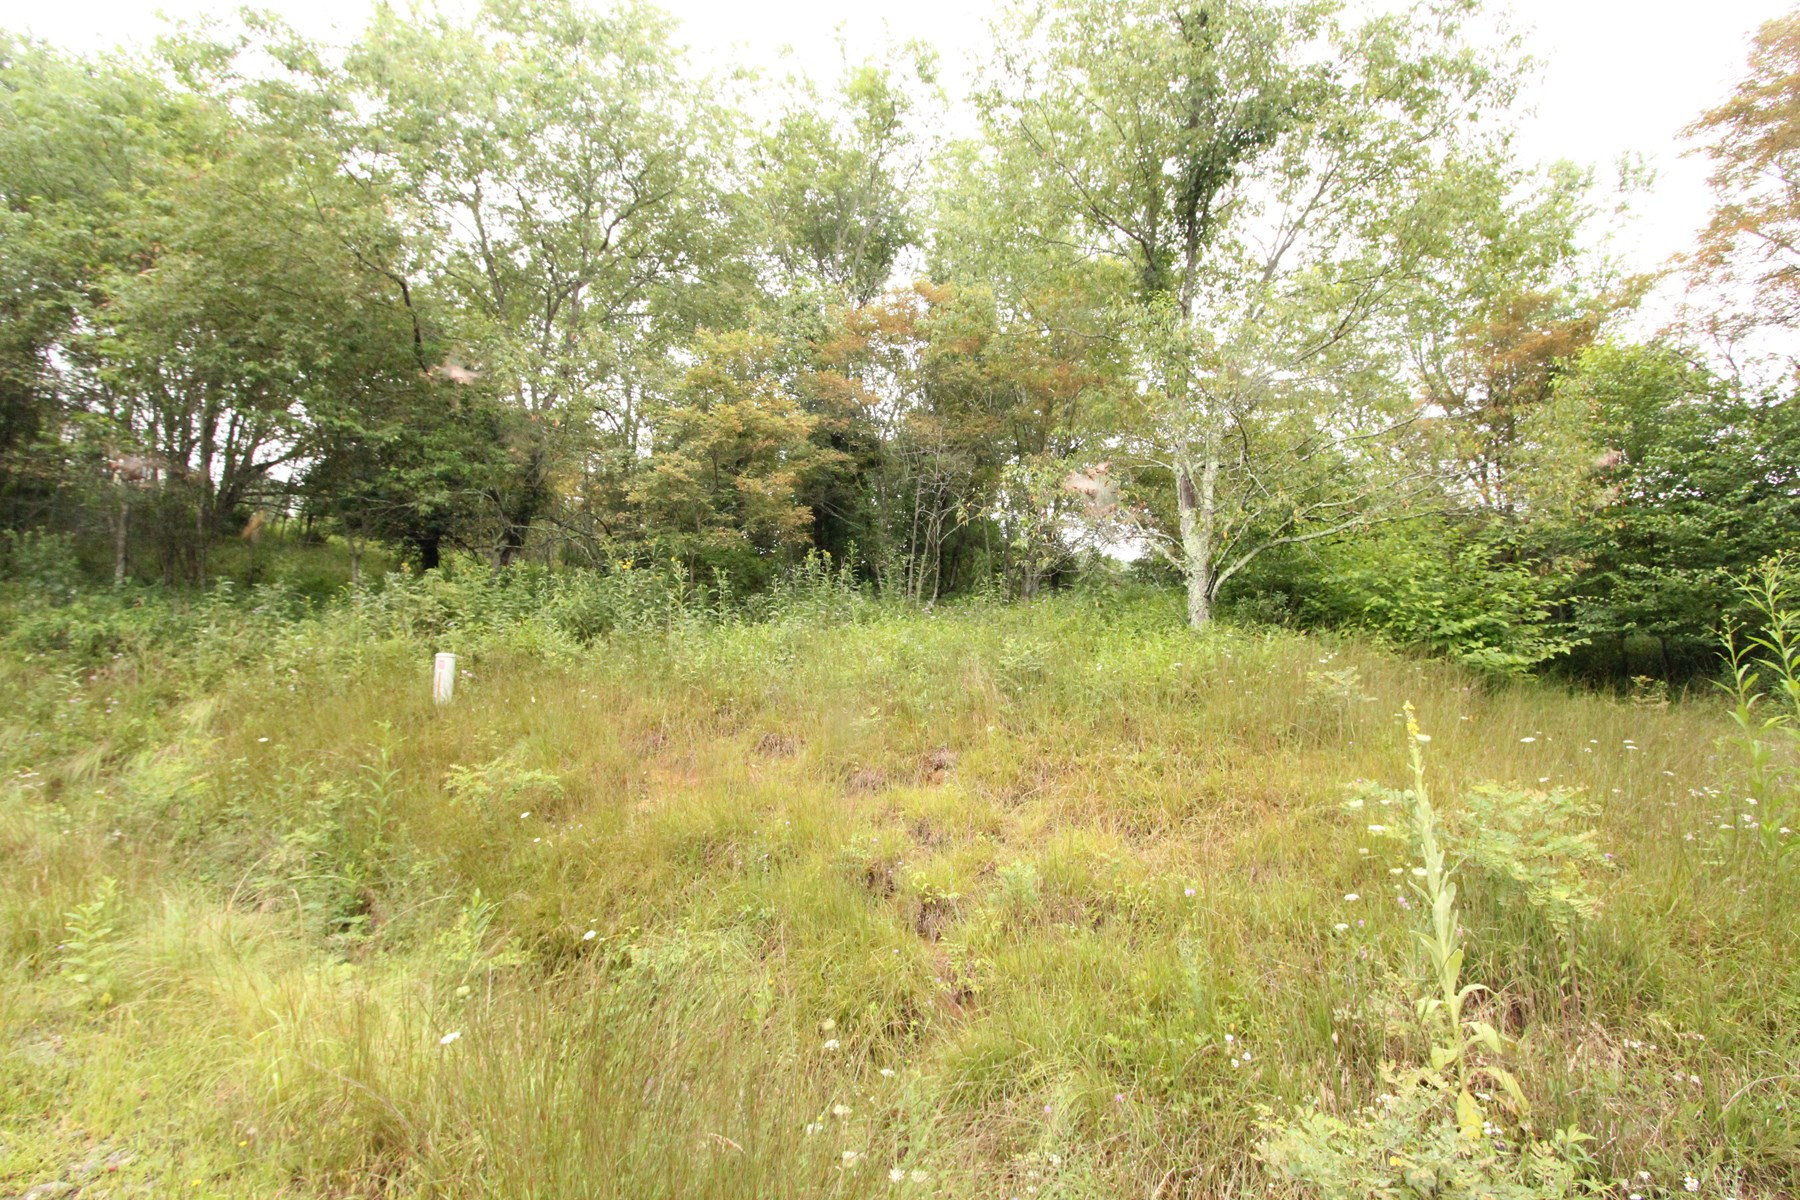 6.06 Acres in Gated Community in Blue Ridge Mountains